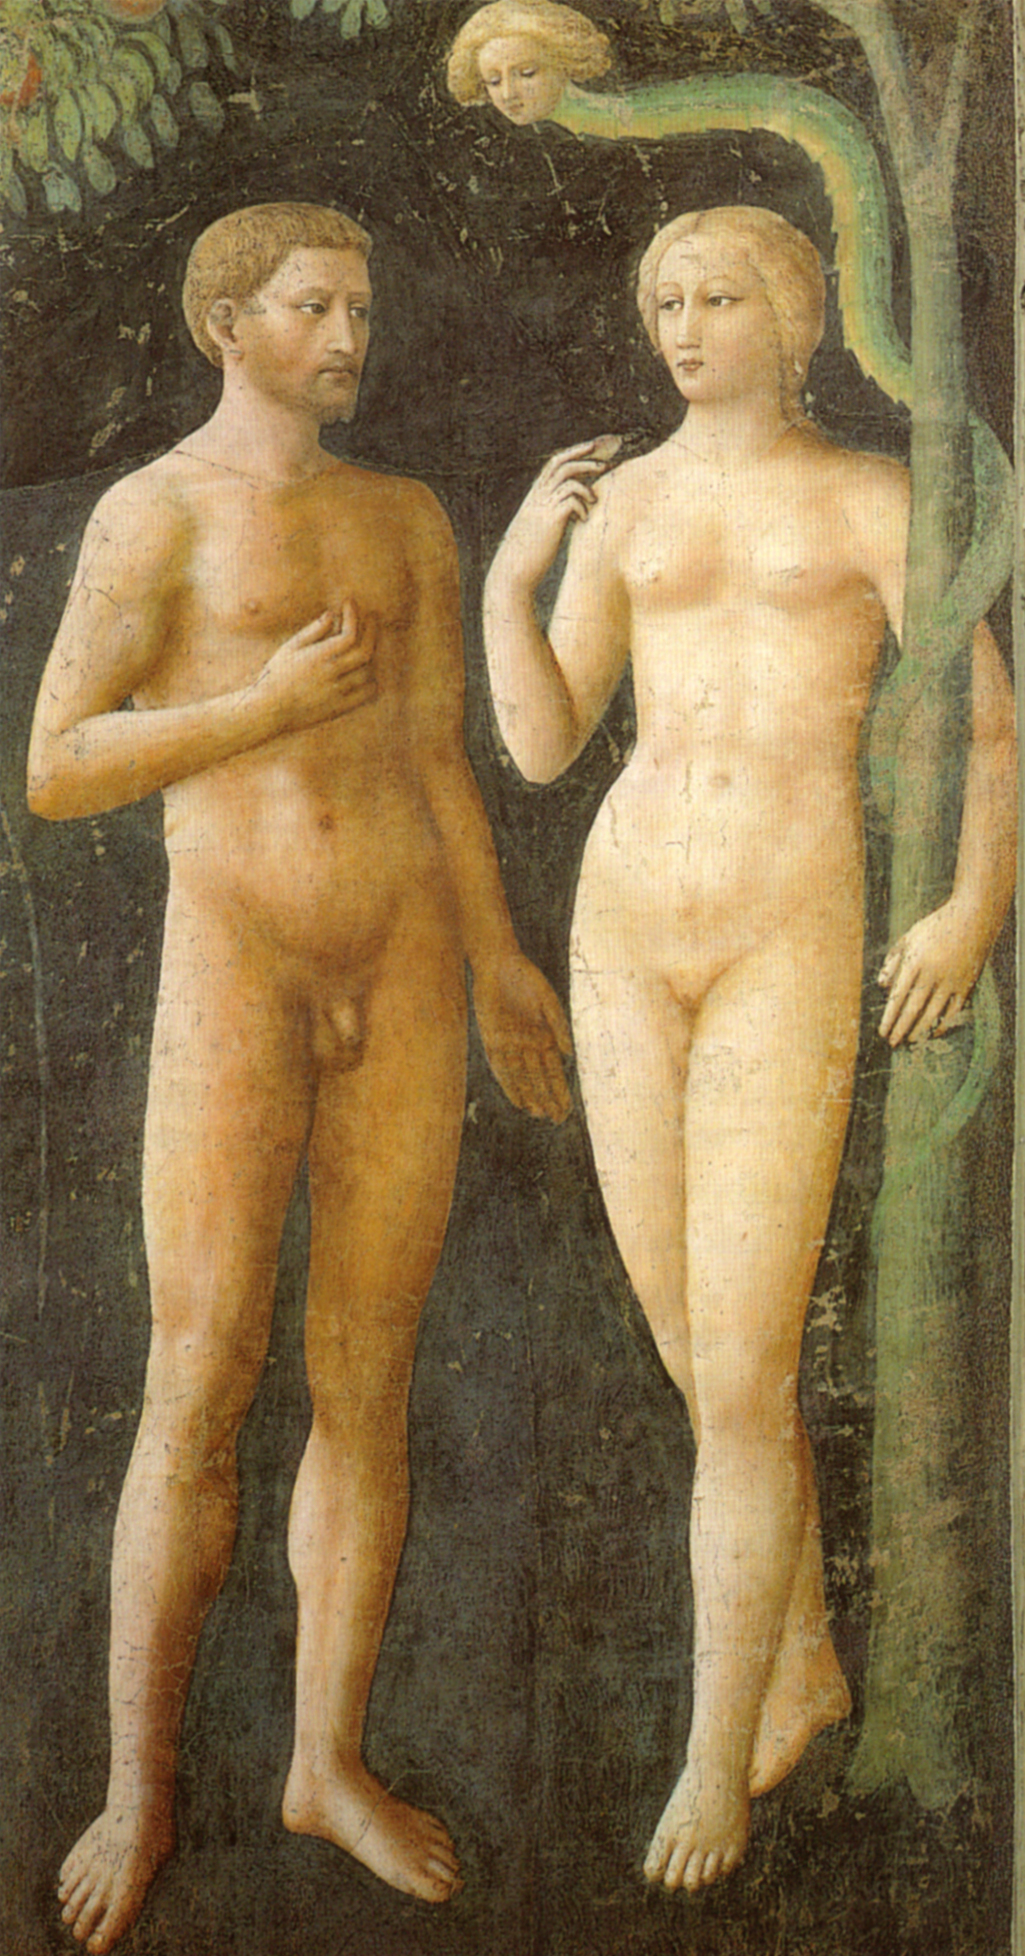 Adam and eve in garden of eden studying genesis chapter 2 9